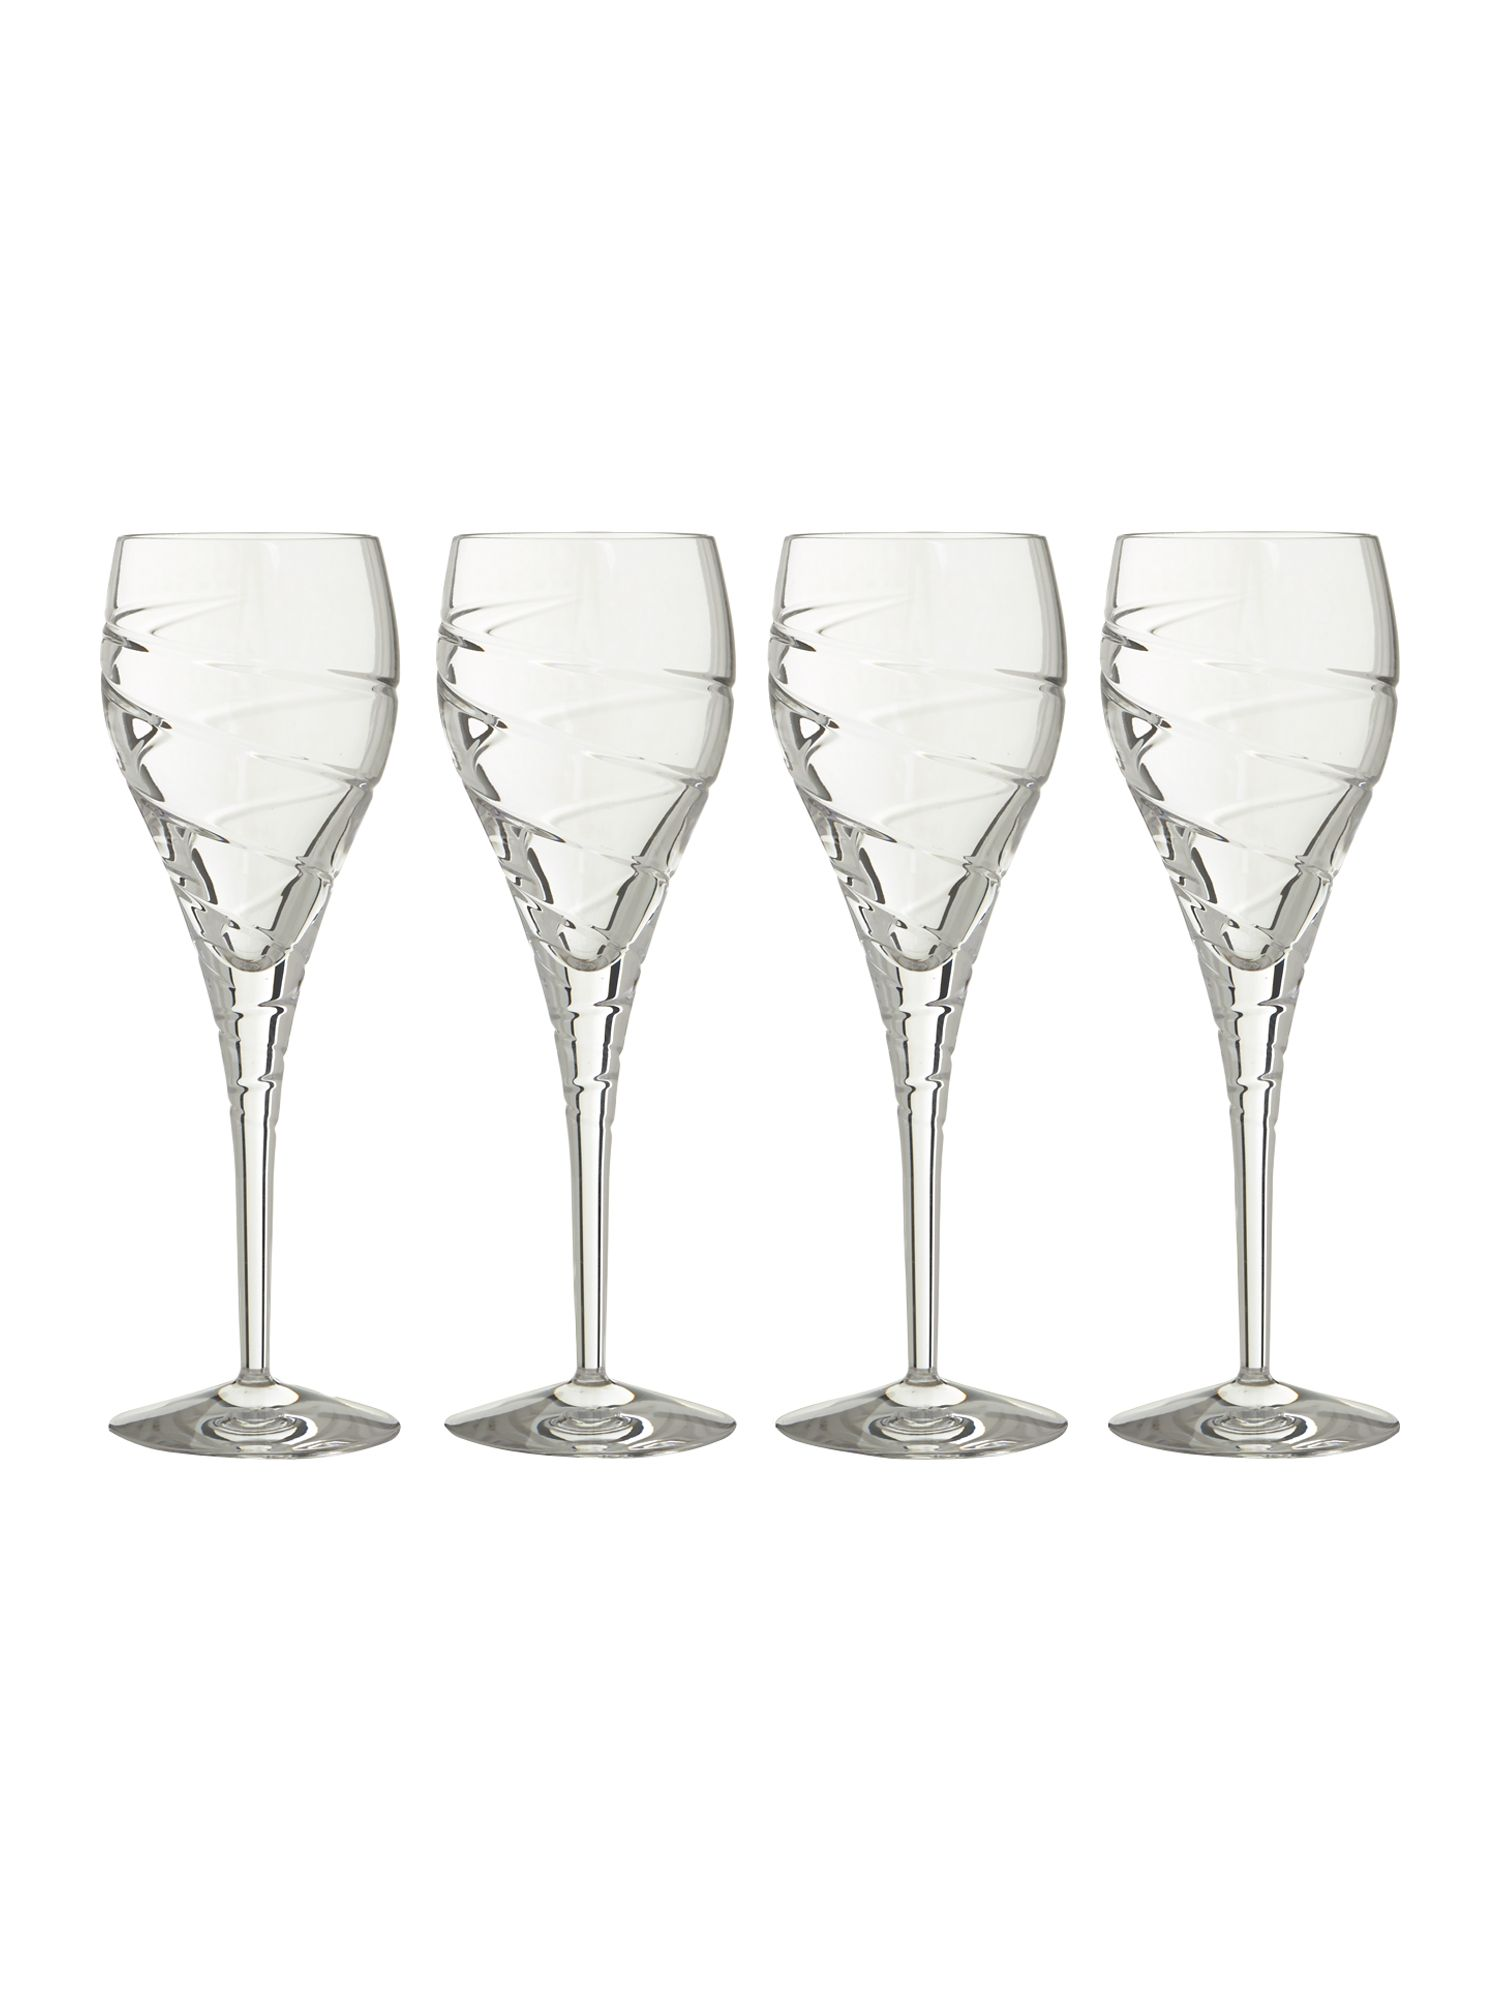 Swirl white wine glasses, box of 4